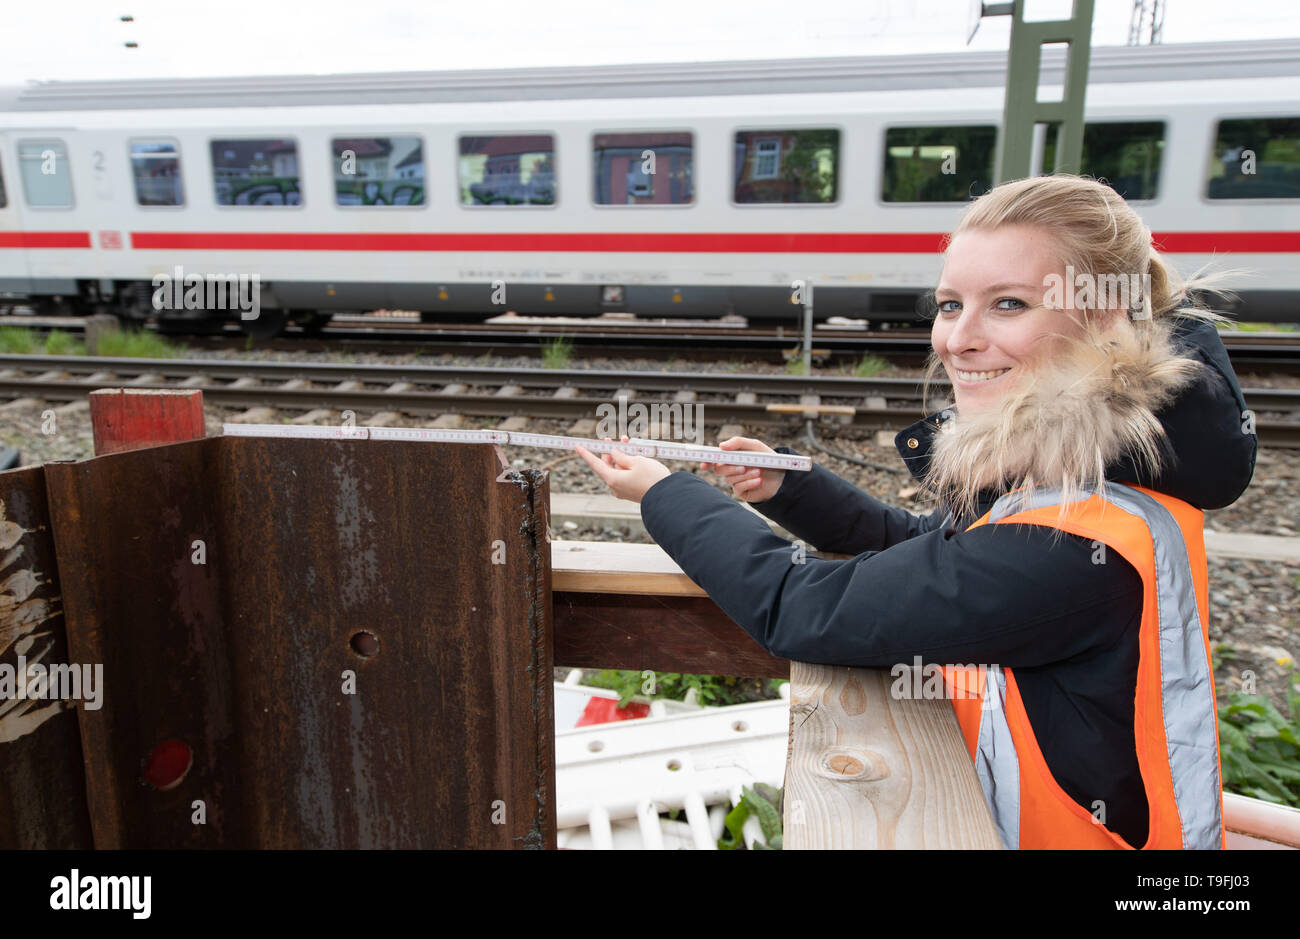 07 May 2019, Lower Saxony, Osnabrück: Johanna Harten, civil engineer at Deutsche Bahn (DB), is standing in front of a new bridge section with a folding rule in her hand. Since January 2017, Deutsche Bahn has been working on the renewal of a railway bridge in Osnabrück, which is to be completed in October of this year. Photo: Friso Gentsch/dpa - Stock Image